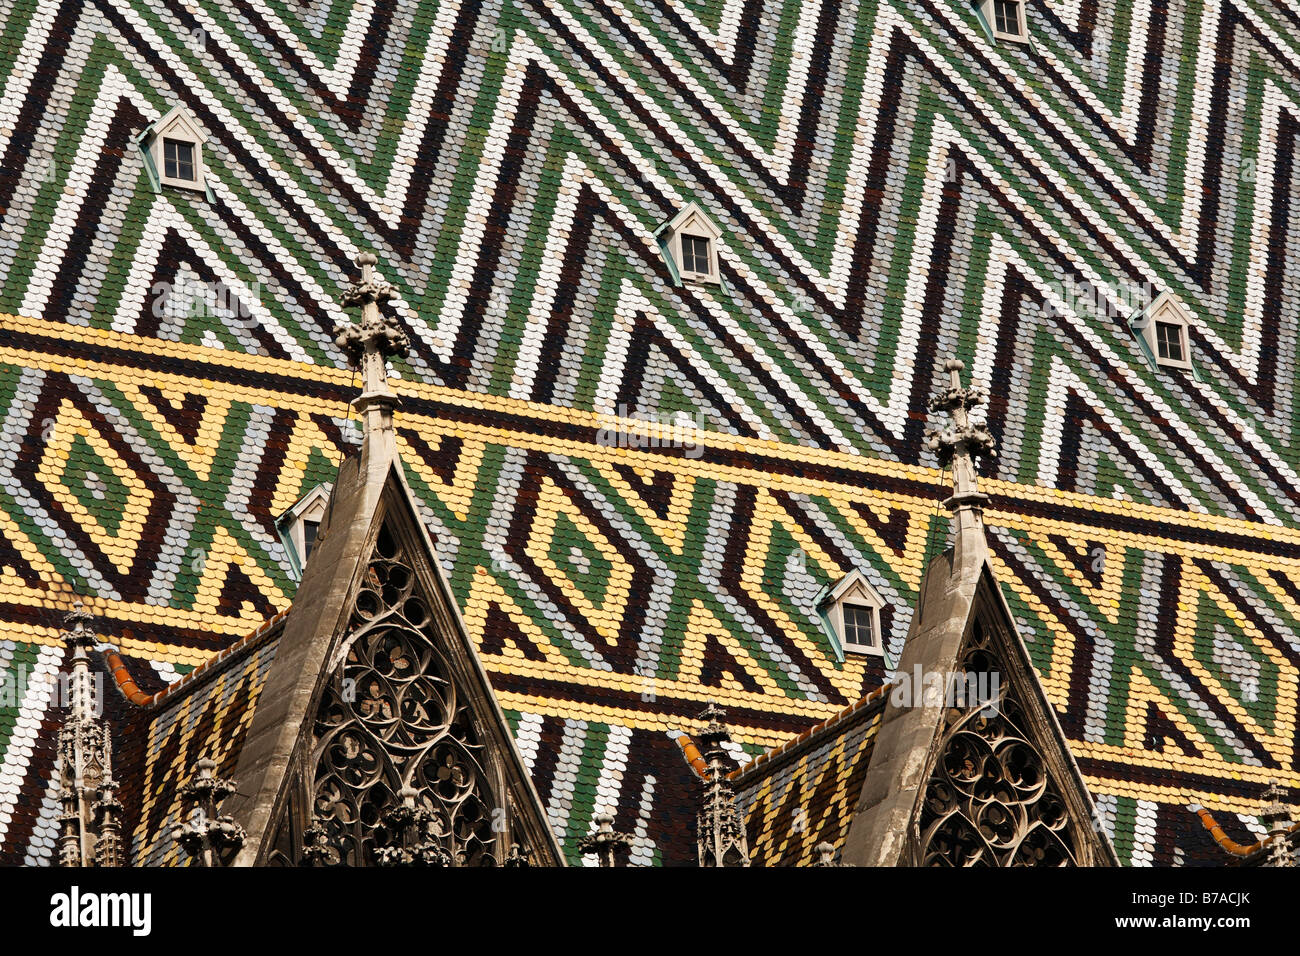 Mosaic, panoply roof of Stephansdom, Stefansdom, St. Stephen's Cathedral, Vienna, Austria, Europe - Stock Image